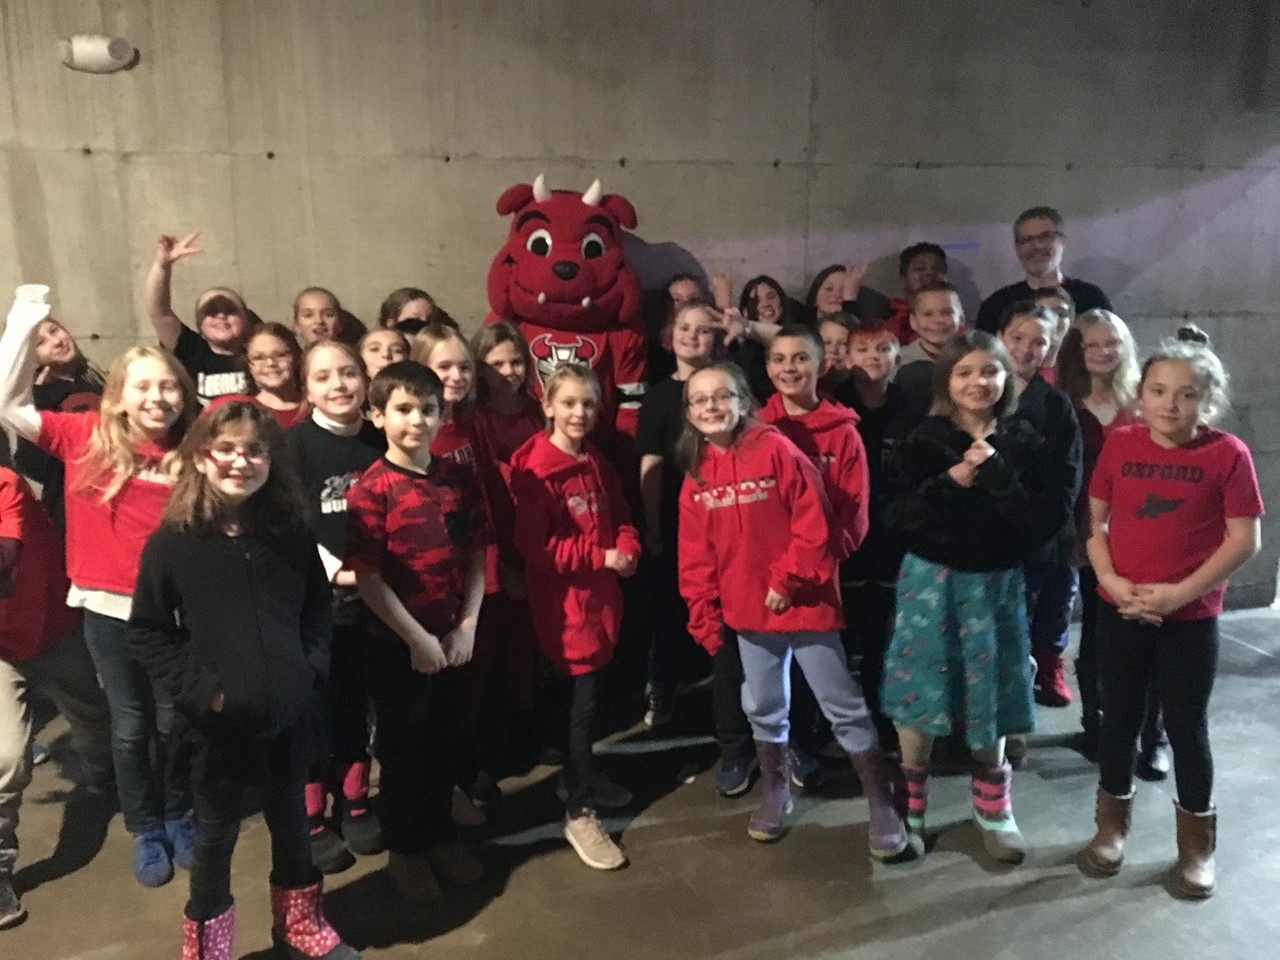 4th grade students posting with Devils mascott before singing